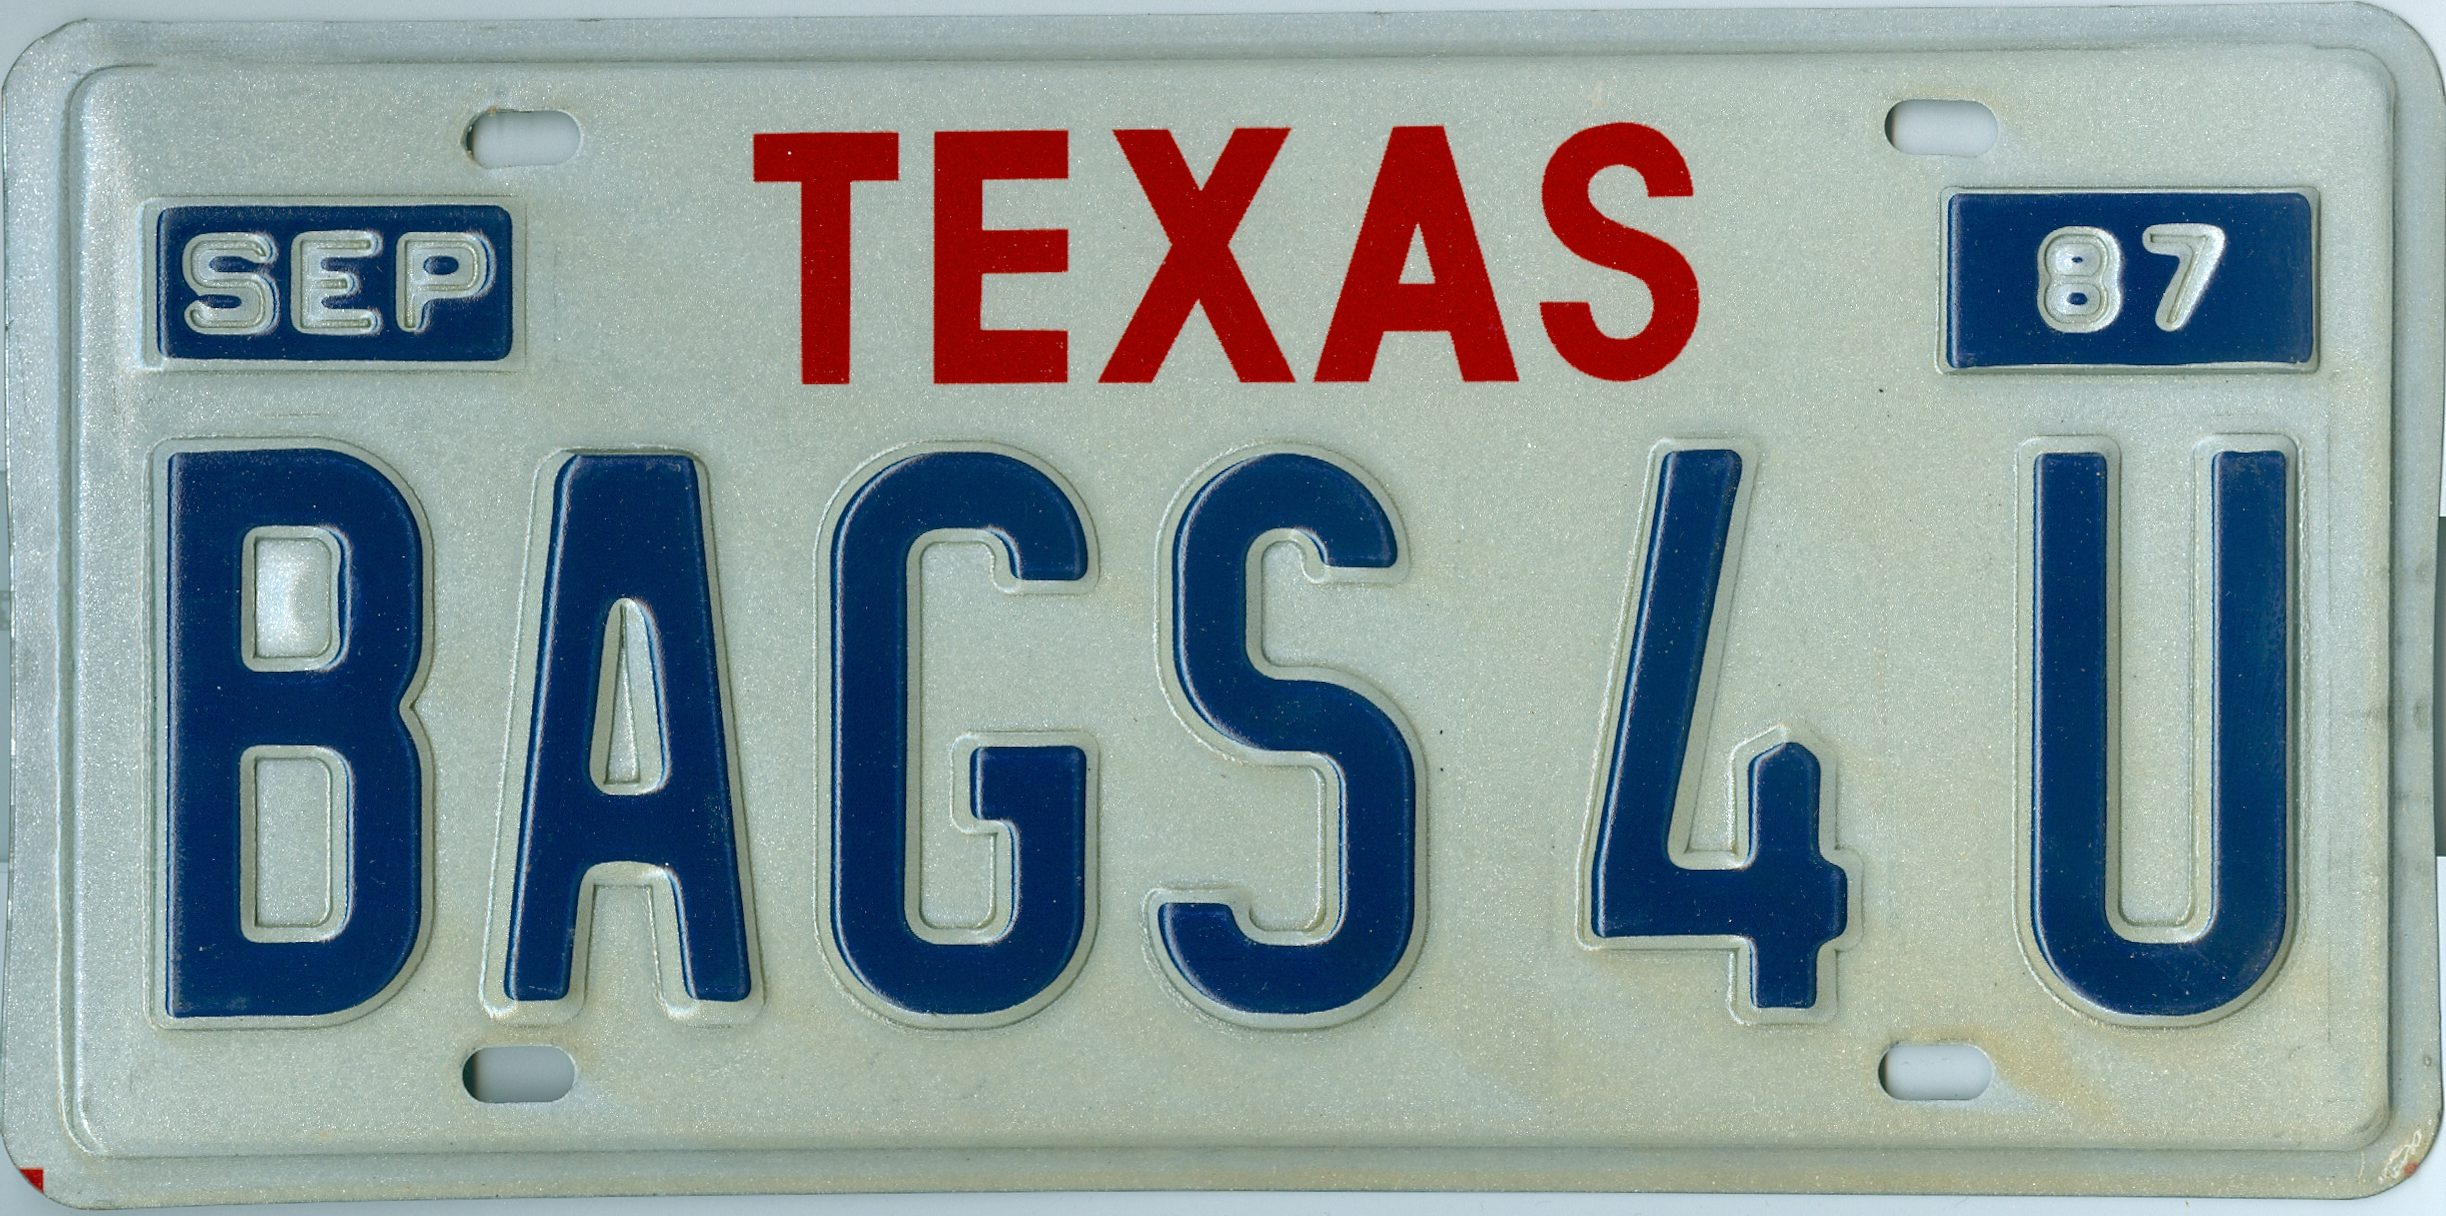 bestplates | The Best License Plates for sale